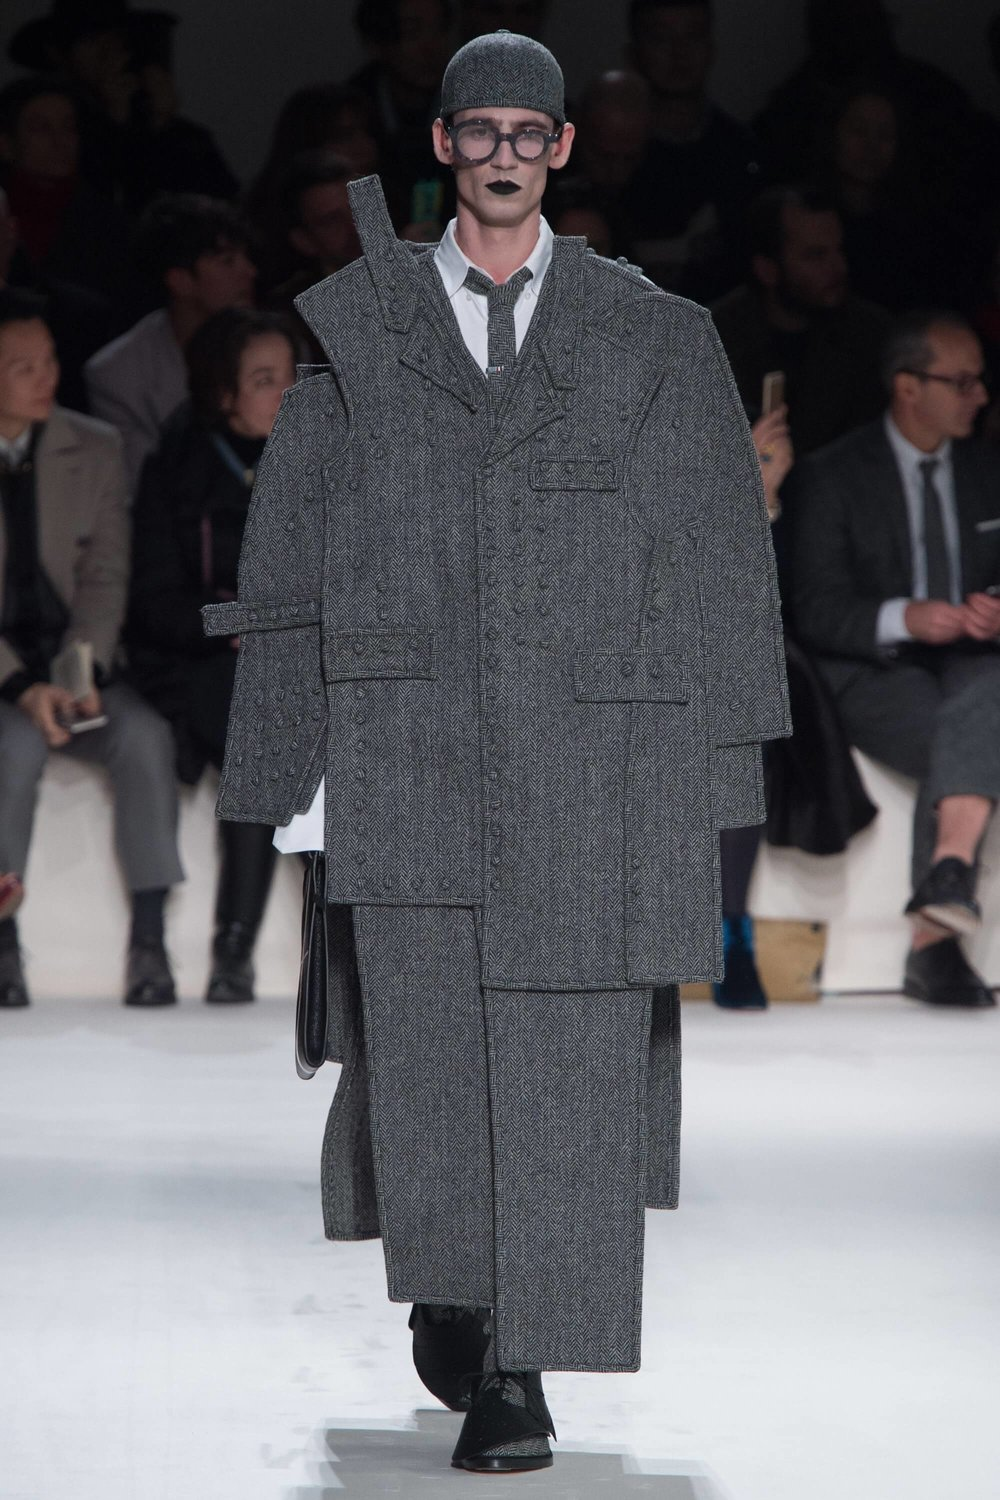 Thom-Browne-Never-Fails-to-Amaze-Thatsitmag-Thatsitmagazine-GraceBrookes-Paris-Fashion-week9.jpg